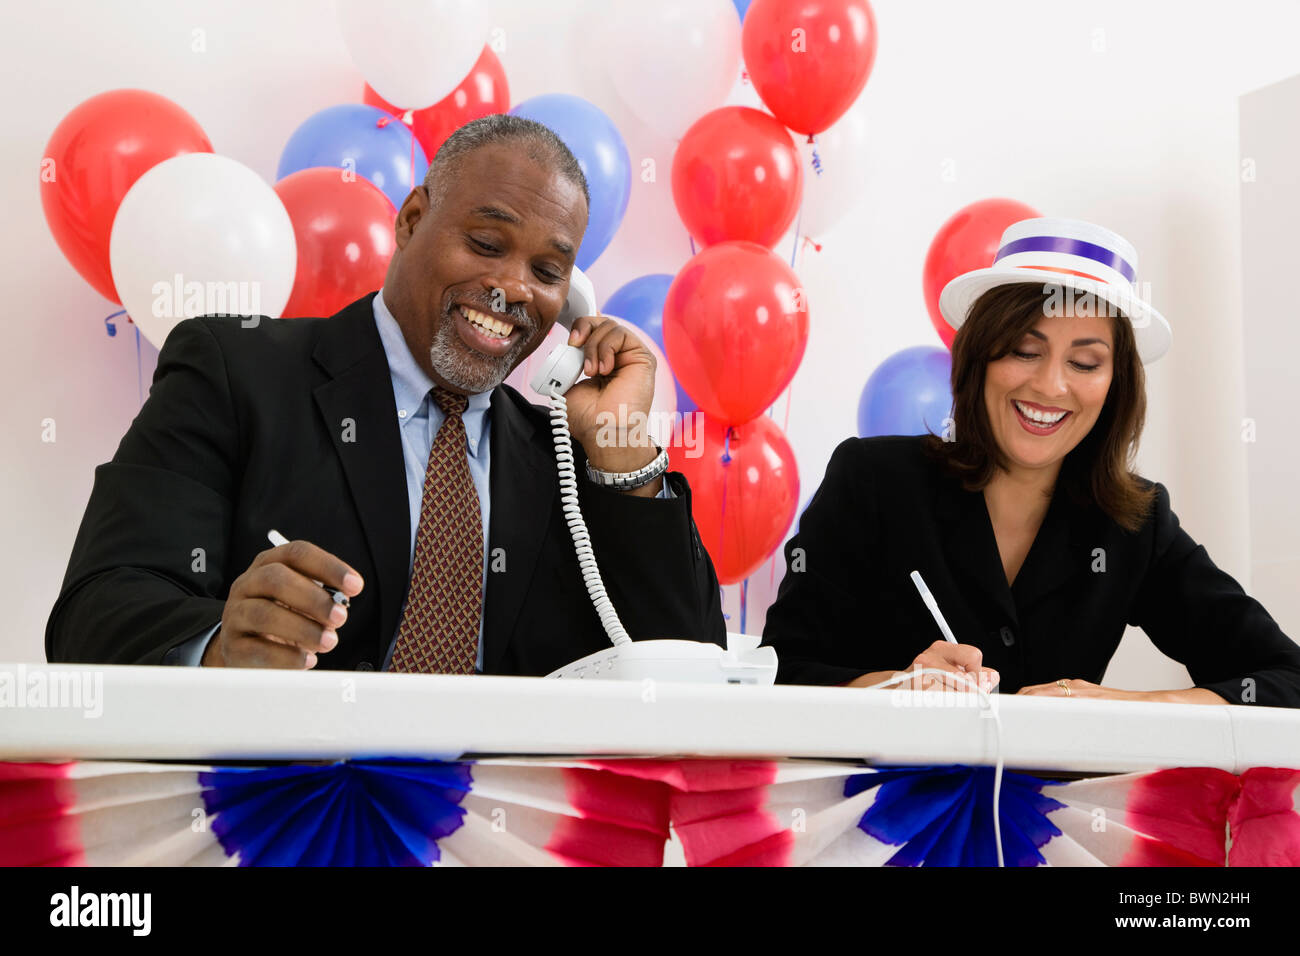 USA, Illinois, Metamora, Smiling man and woman at polling place table, red and blue balloons in background - Stock Image